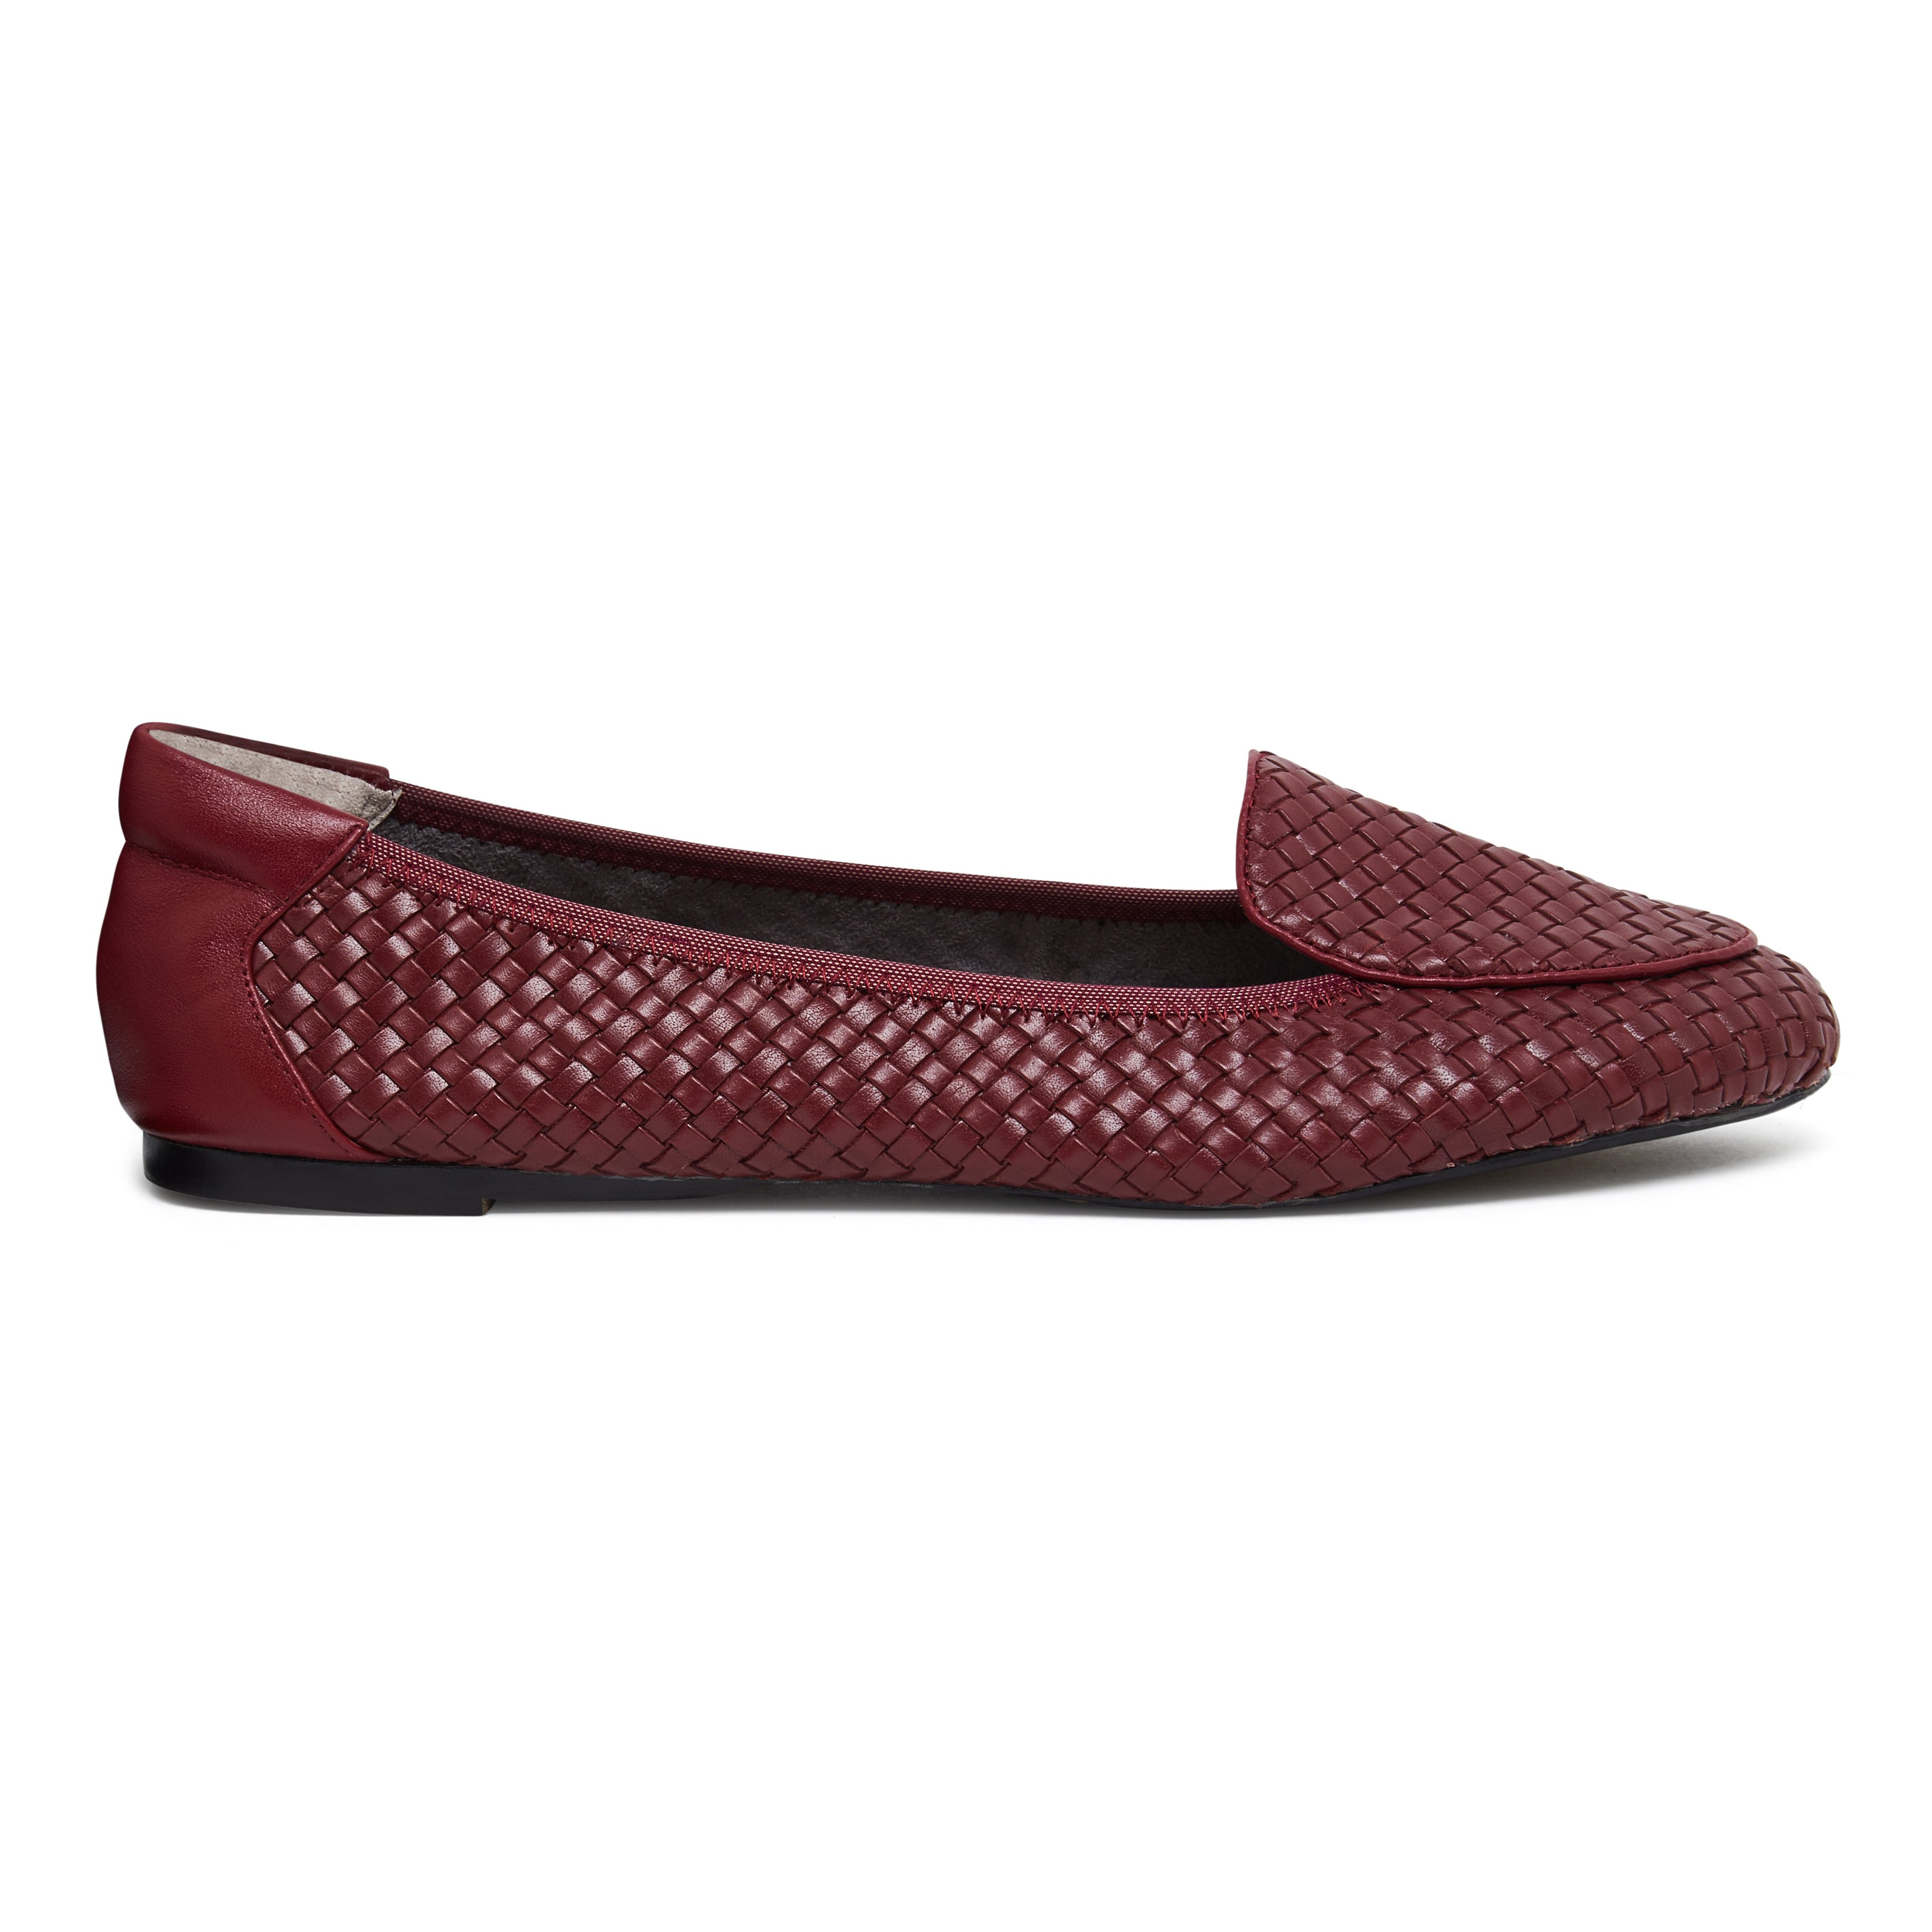 Clapham - Burgundy Woven Leather Loafers